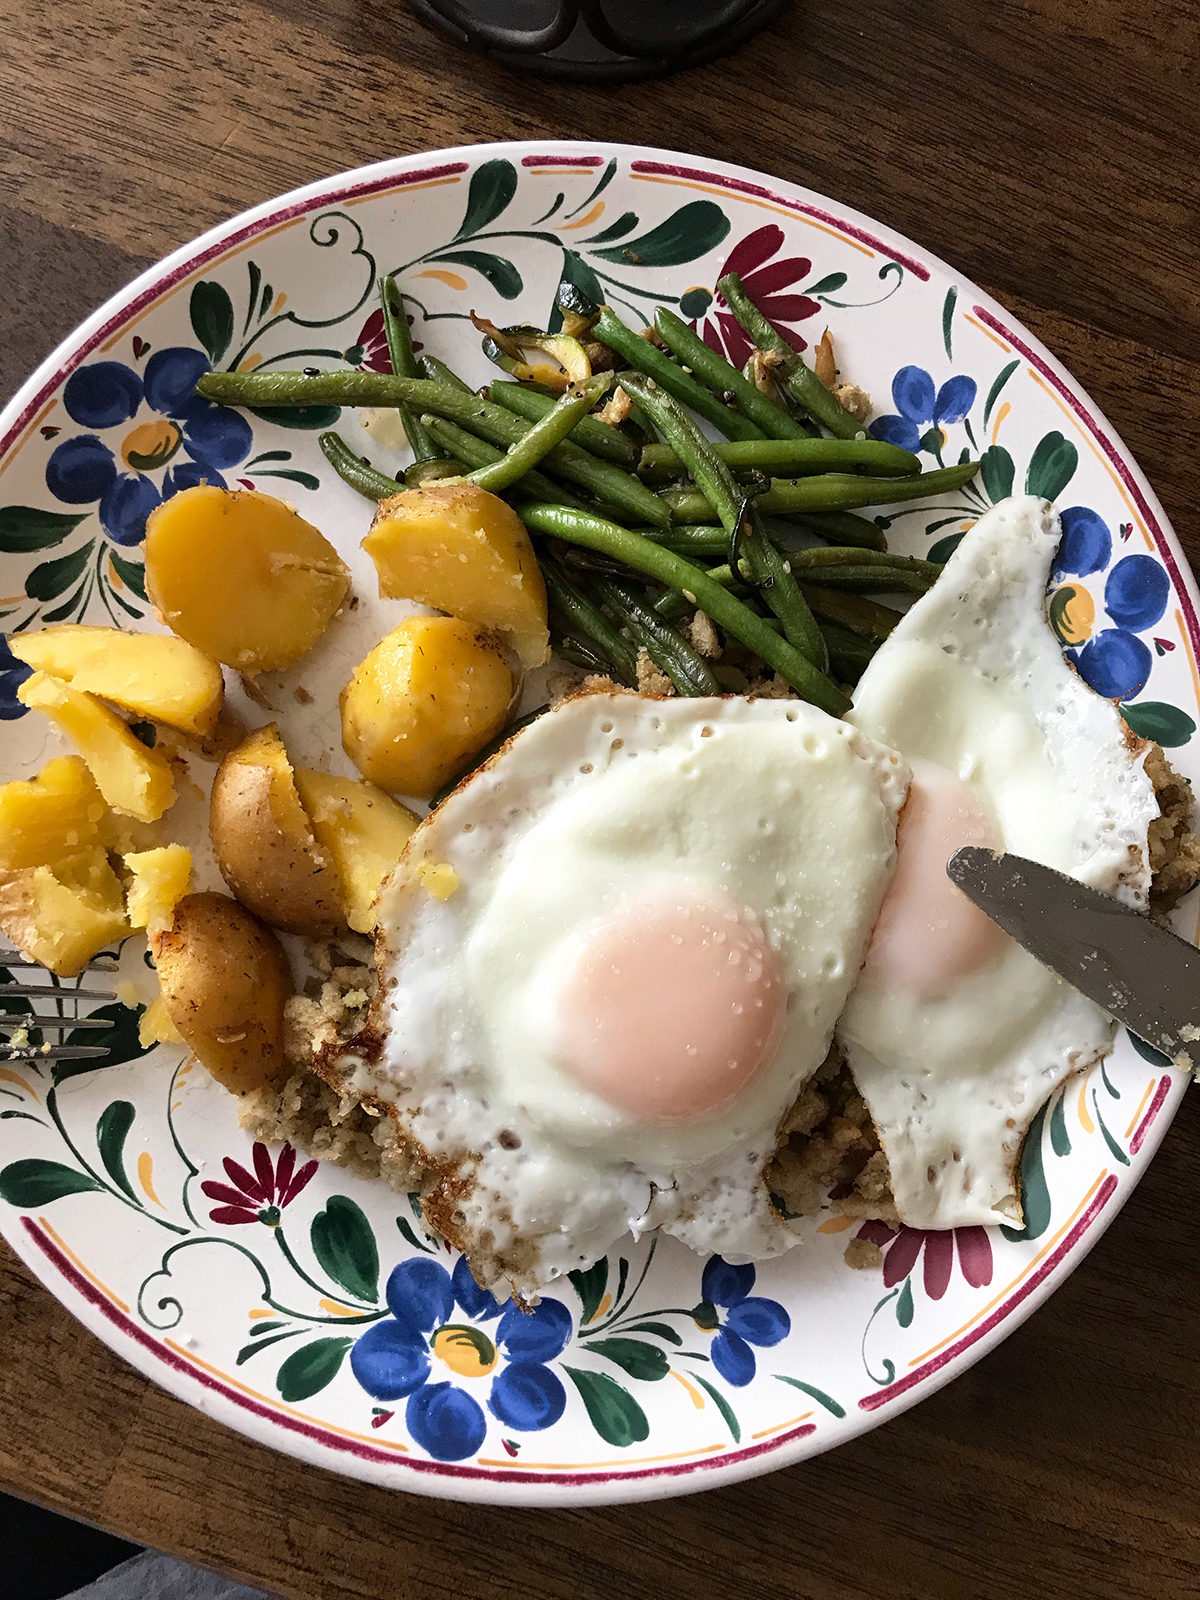 breakfast plate of eggs and leftovers